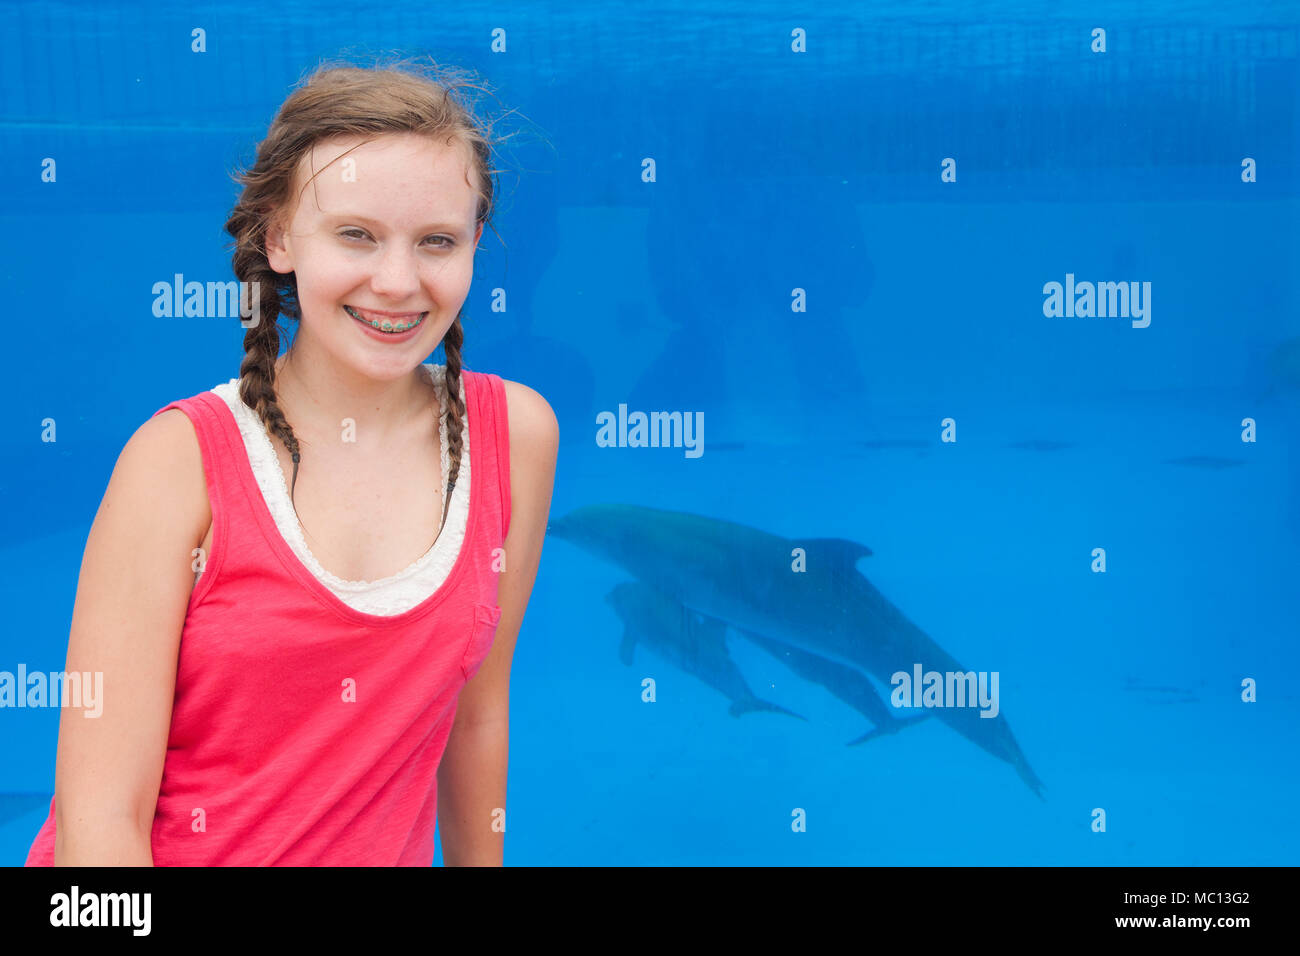 Teenage Caucasian girl in orthodontic braces and braided dark blond hair wearing a sleeveless pink shirt smiles in front of a tank with dolphins swimm - Stock Image